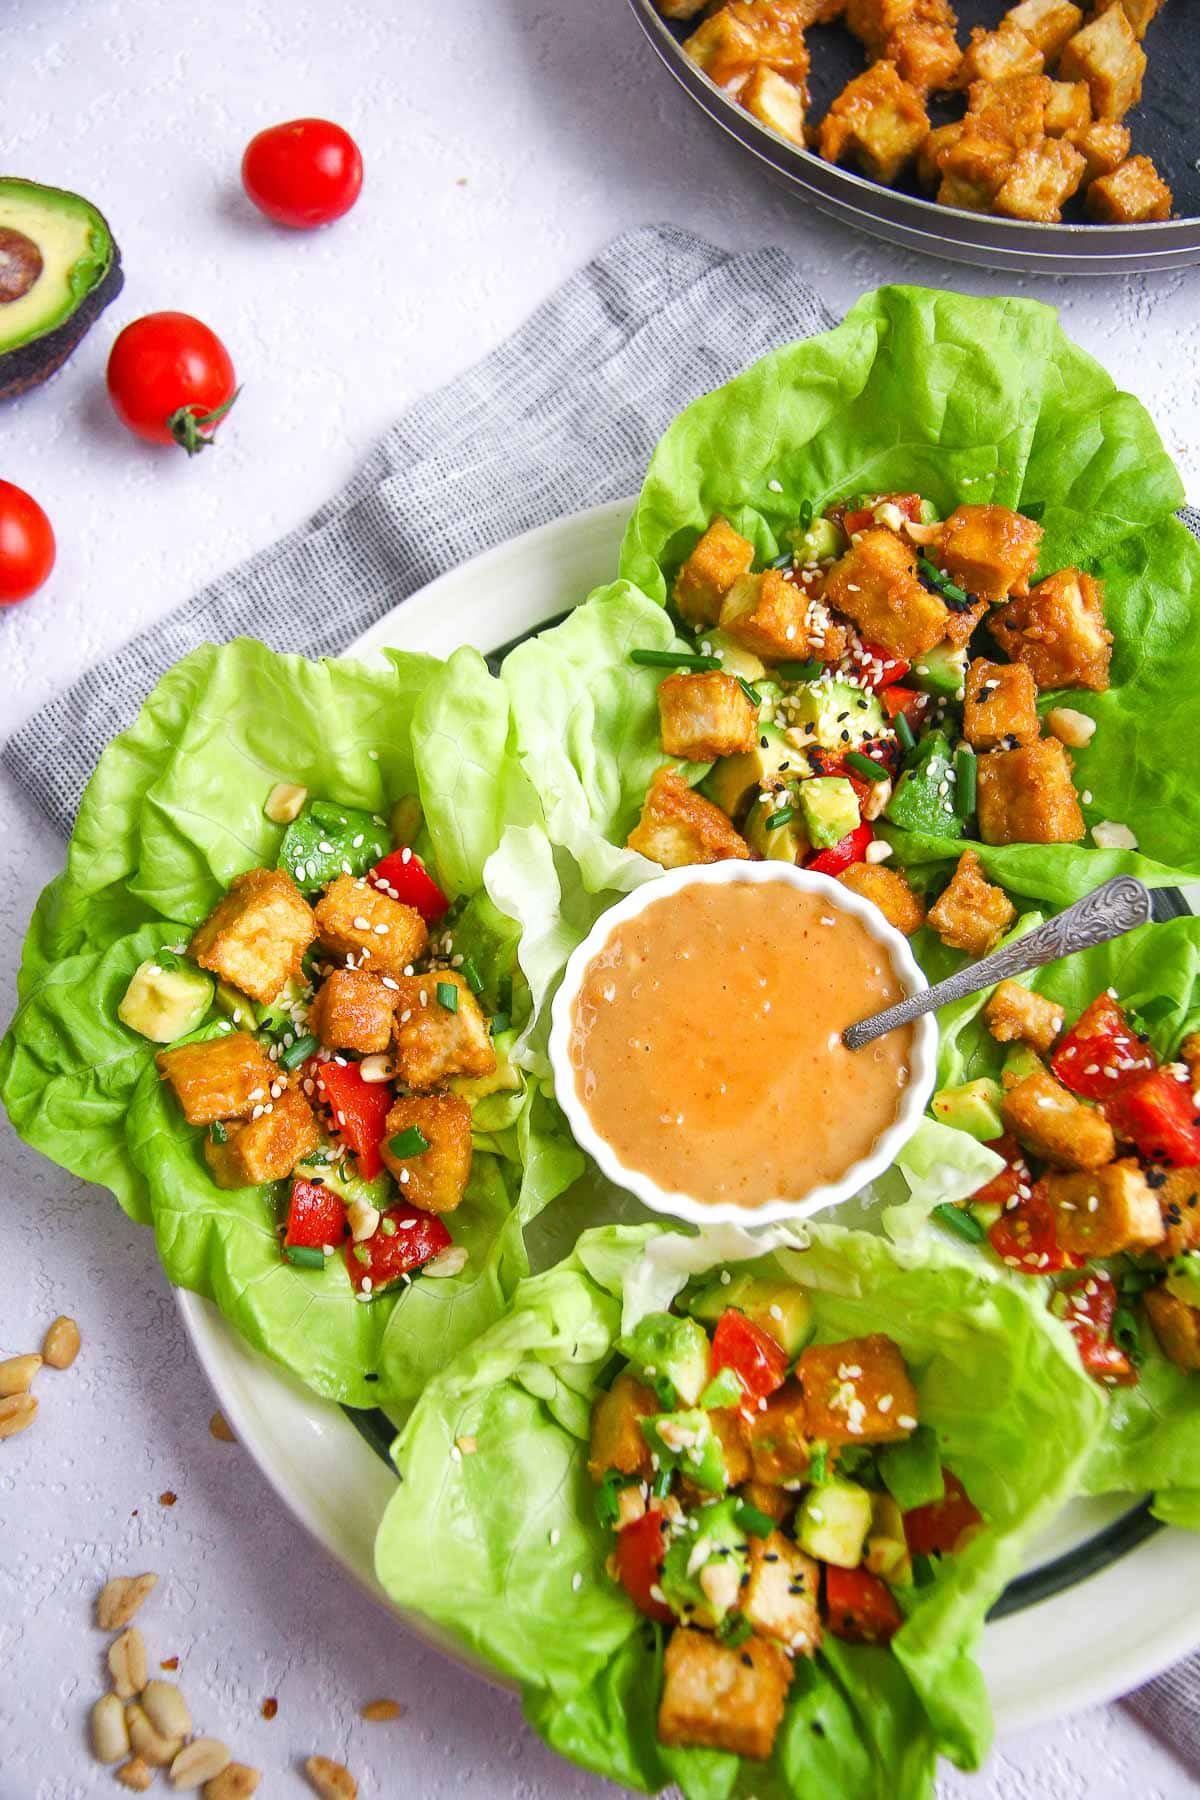 Healthy low carb and vegan tofu lettuce wraps recipe with avocado salsa.